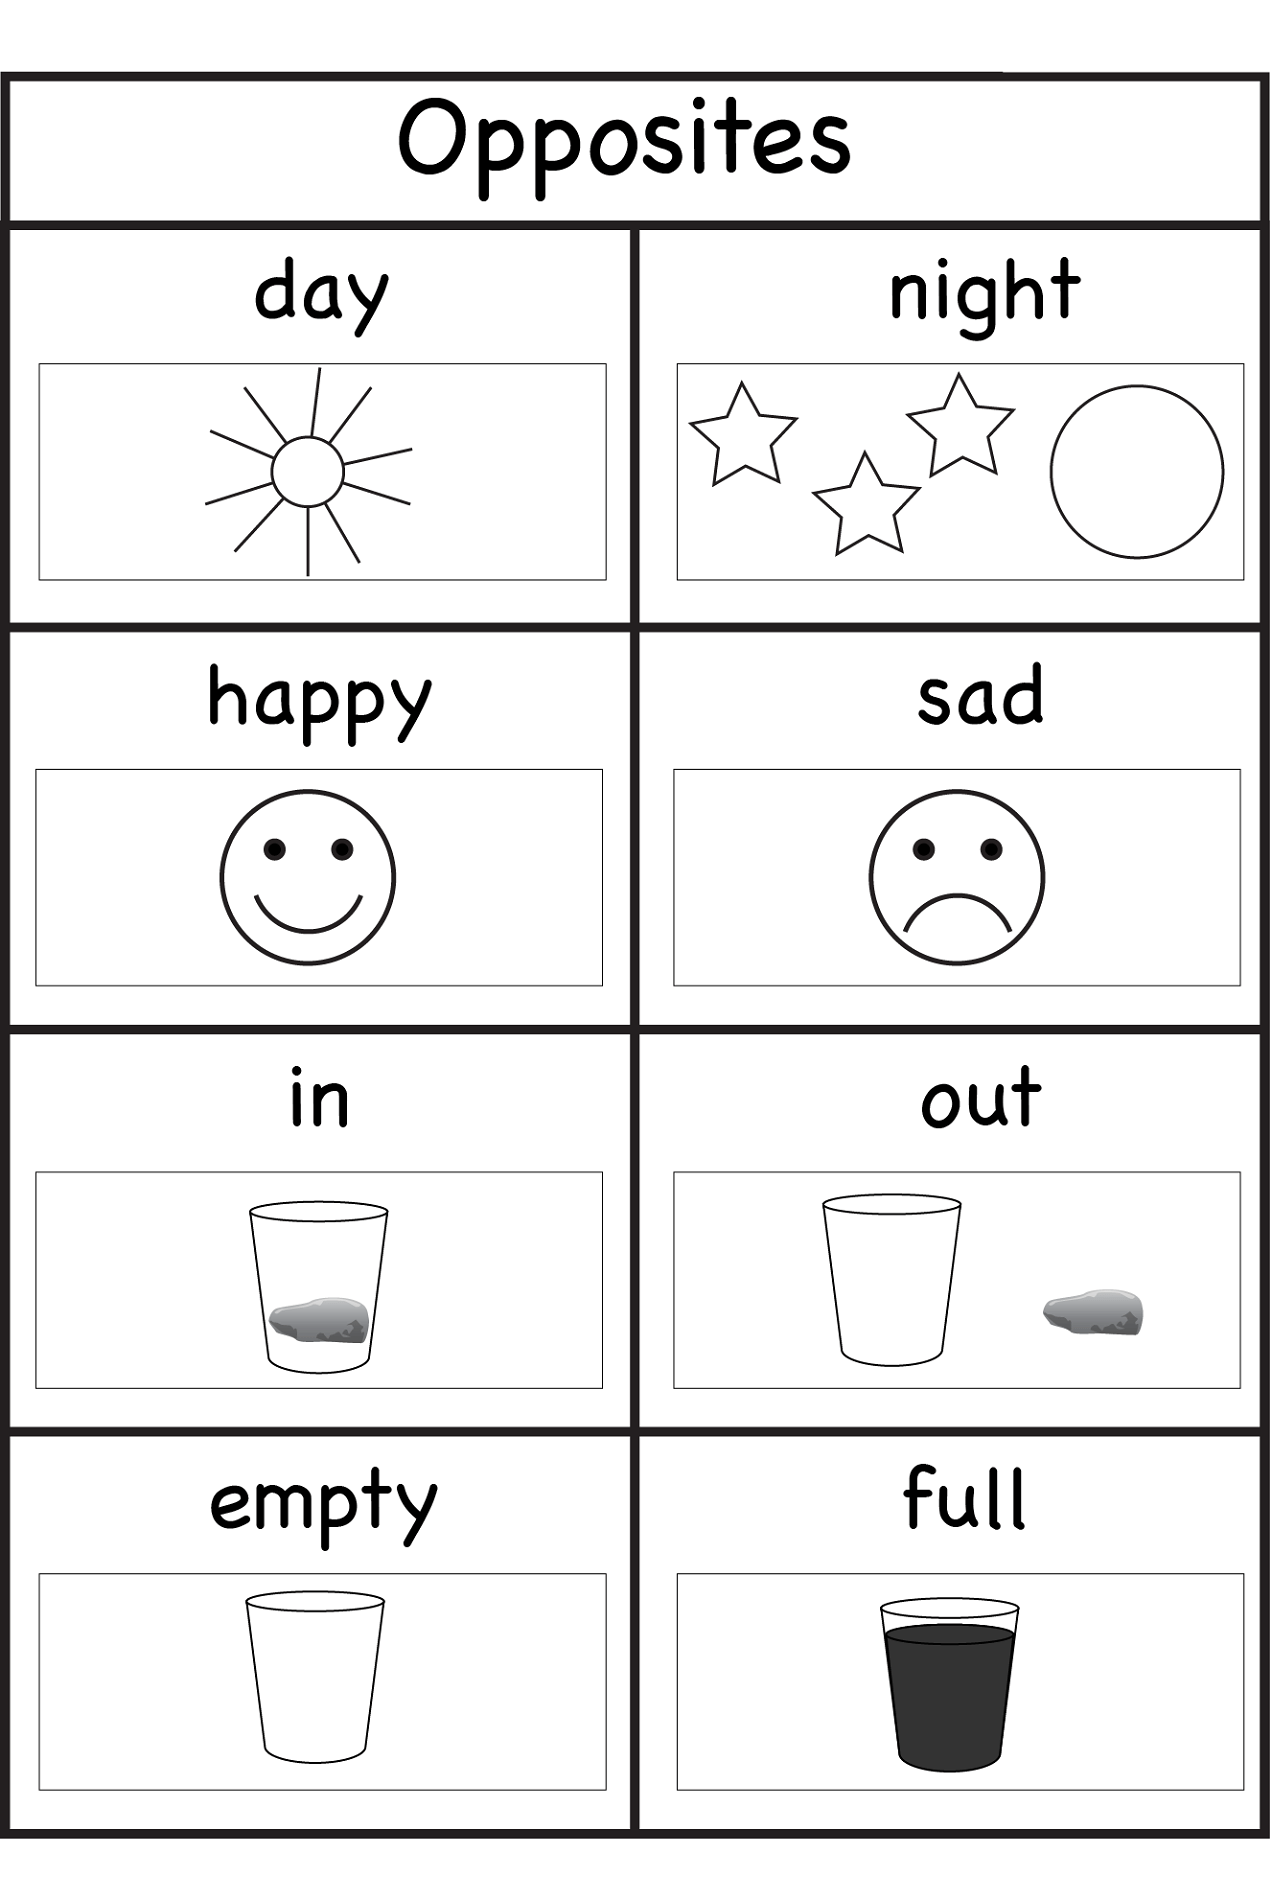 4 Year Old Worksheets Printables Free 4 Best Free